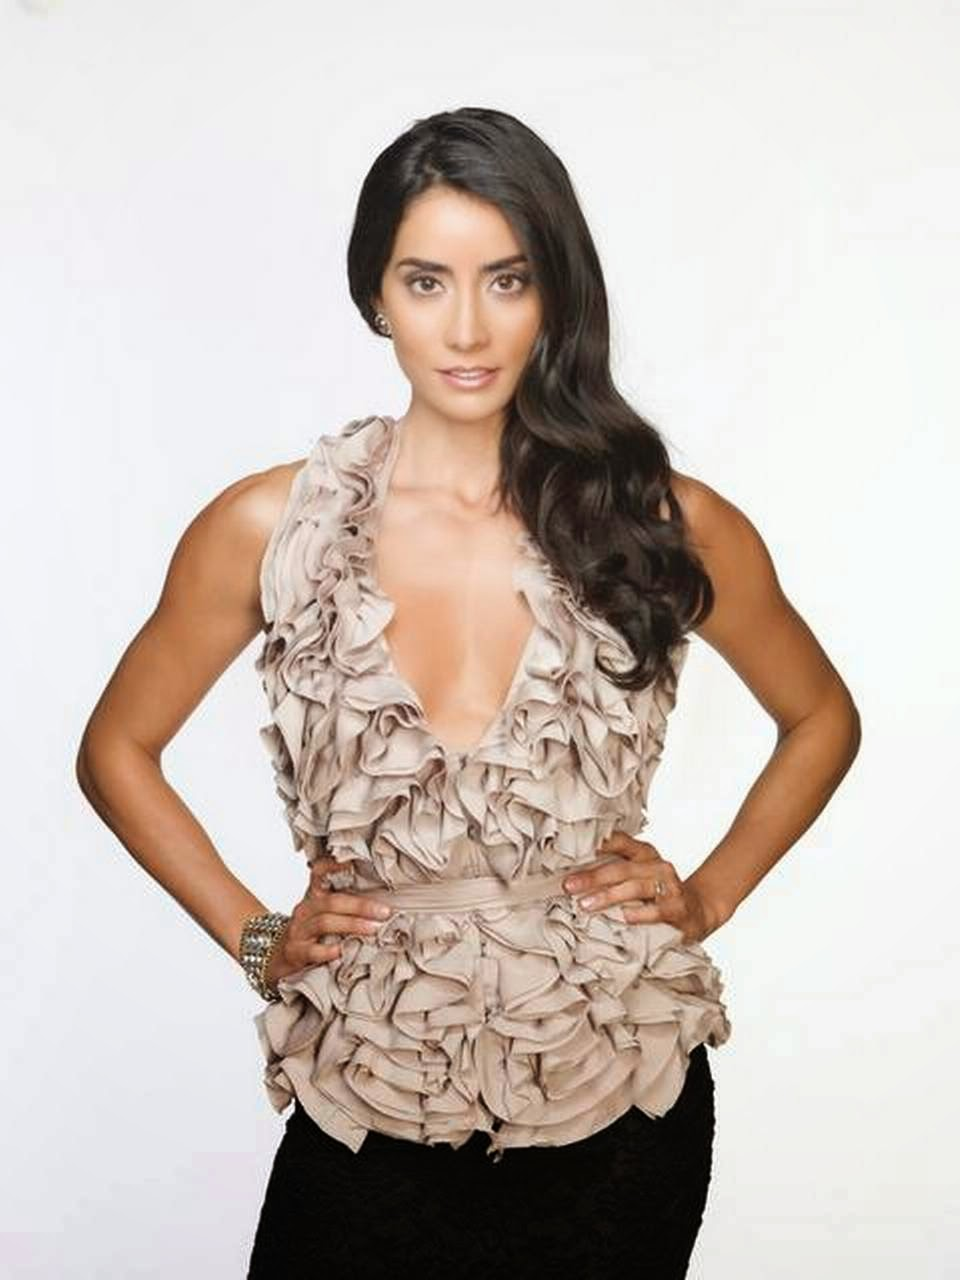 panola latino personals Matchcom, the leading online dating resource for singles search through thousands of personals and photos go ahead, it's free to look.